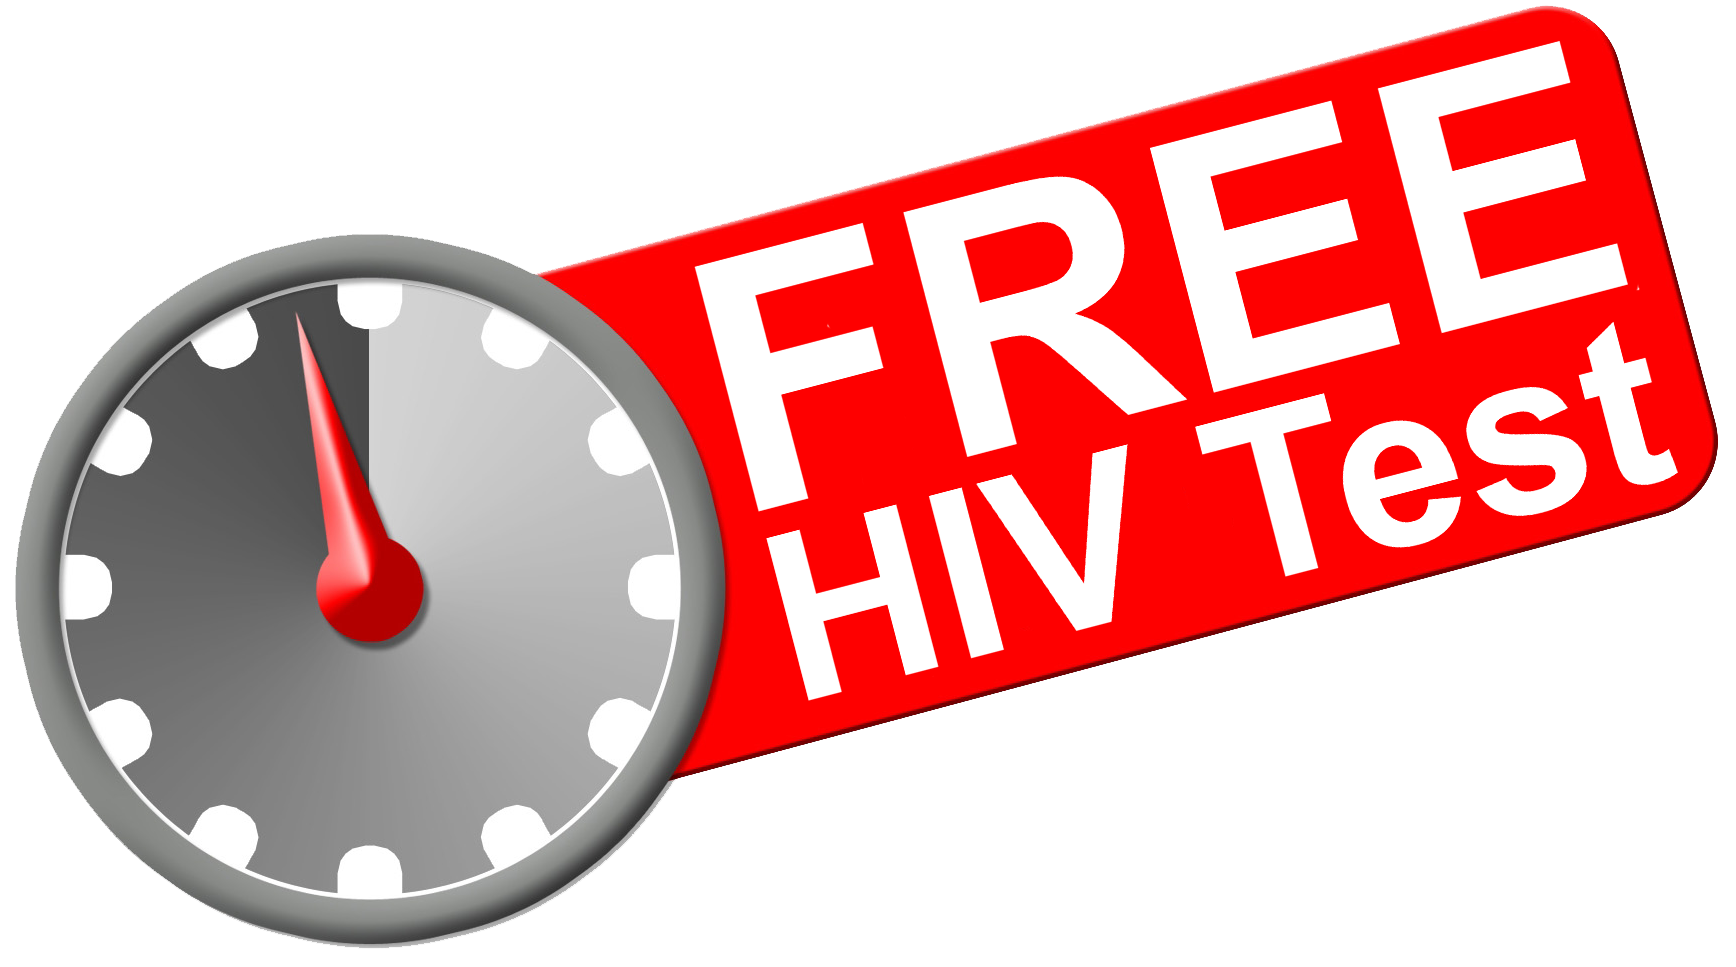 FREE HIV TEST - A FREE and CONFIDENTIAL HIV testing service open to anyone over 16 years of age regardless of gender or sexuality, is available through Shine.The test is a simple finger prick test with a pre and post test discussion (results received within 15 minutes).The staff who perform the test are all fully trained by the New Croft Centre sexual health service in Newcastle. The test used is by BioSure and is 99.7% accurate. Call us for an appointment: 0191 277 2050.